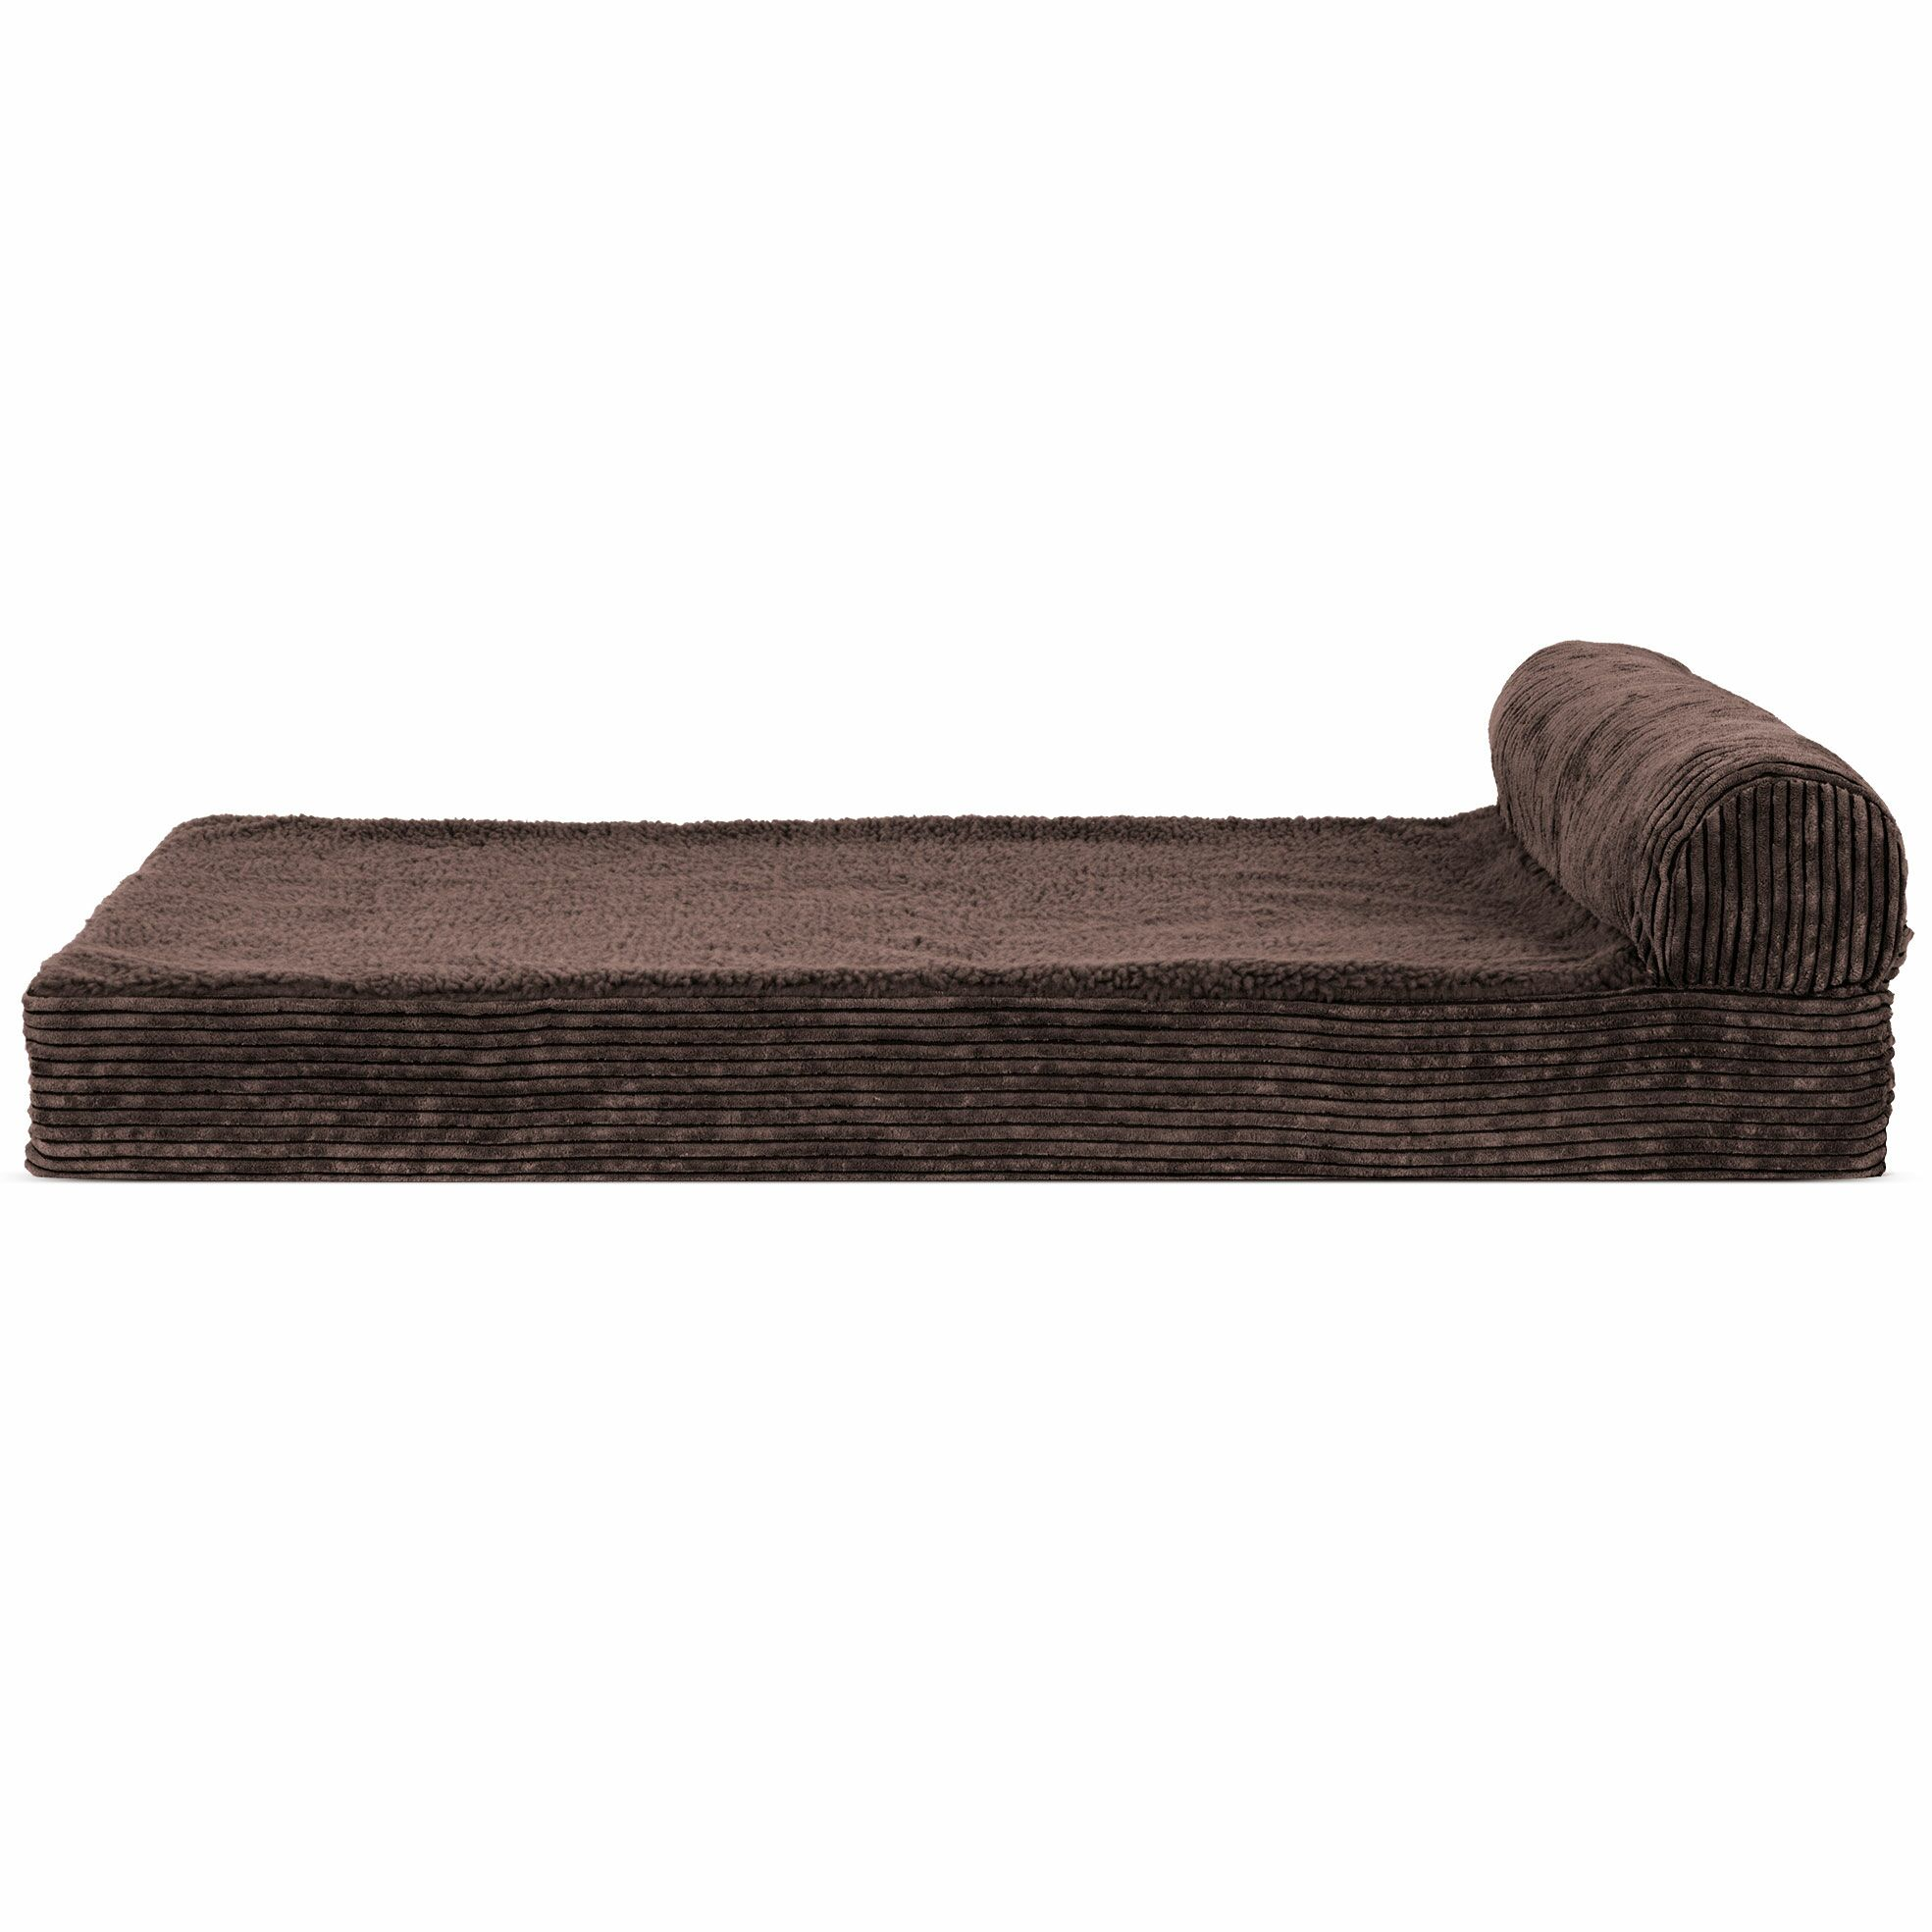 Arvin Faux Fleece and Corduroy Dog Sofa Color: Dark Espresso, Size: Large ( 36